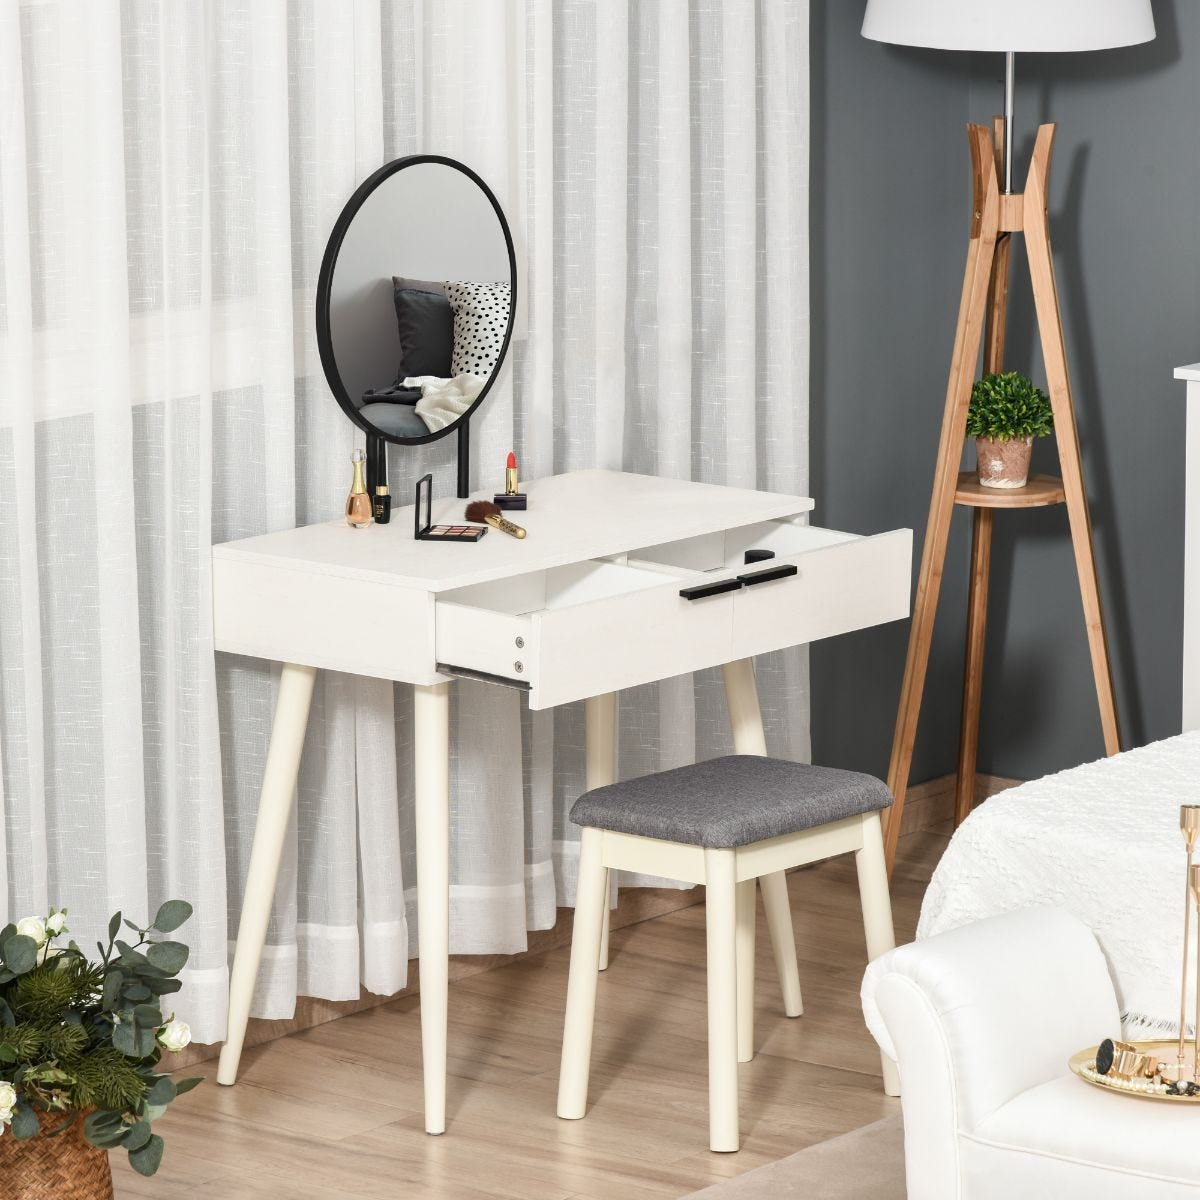 Contemporary Two Piece Dressing Table Set With Stool And Round Mirror White